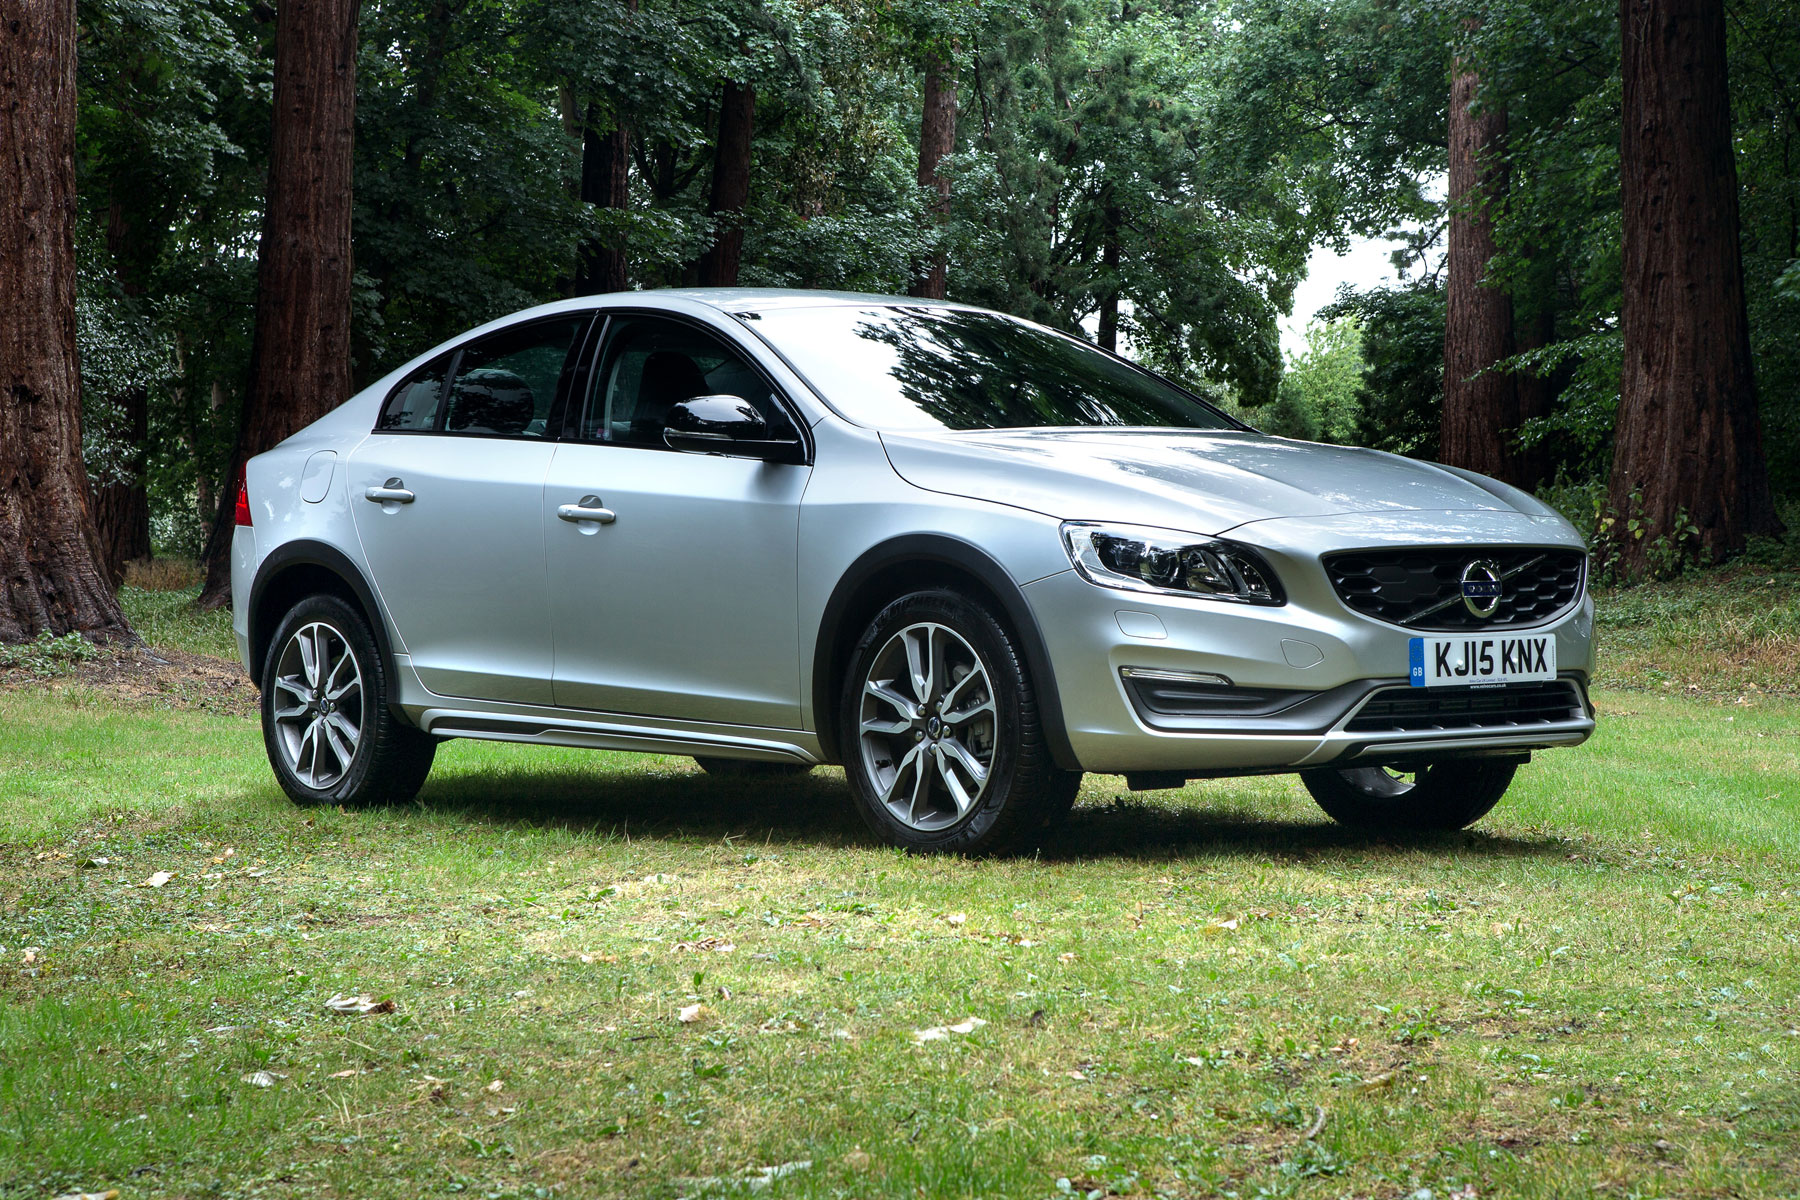 volvo s60 cross country review 2015 first drive motoring research. Black Bedroom Furniture Sets. Home Design Ideas